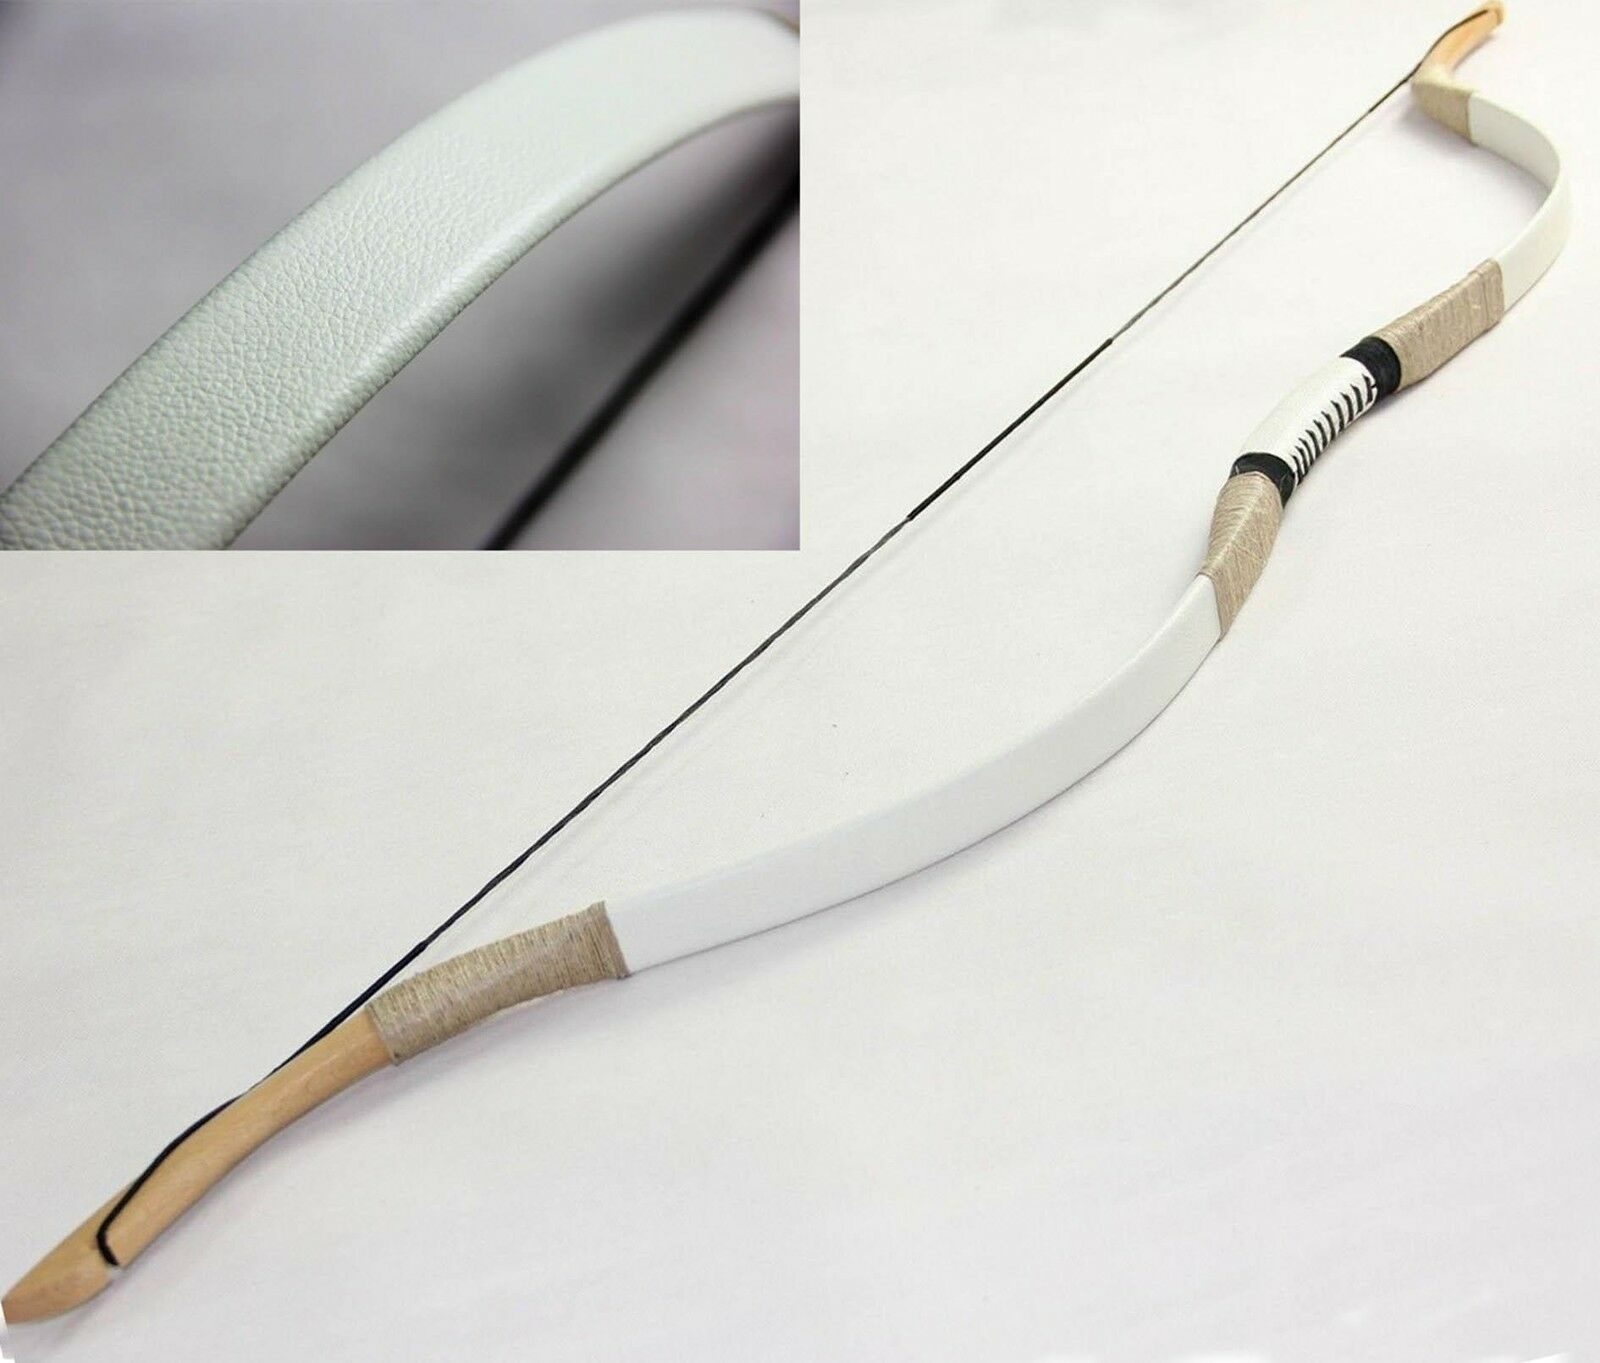 New 45 lbs Handmade Traditional Recurve Bow White Mongol Longbow Hunting Archery